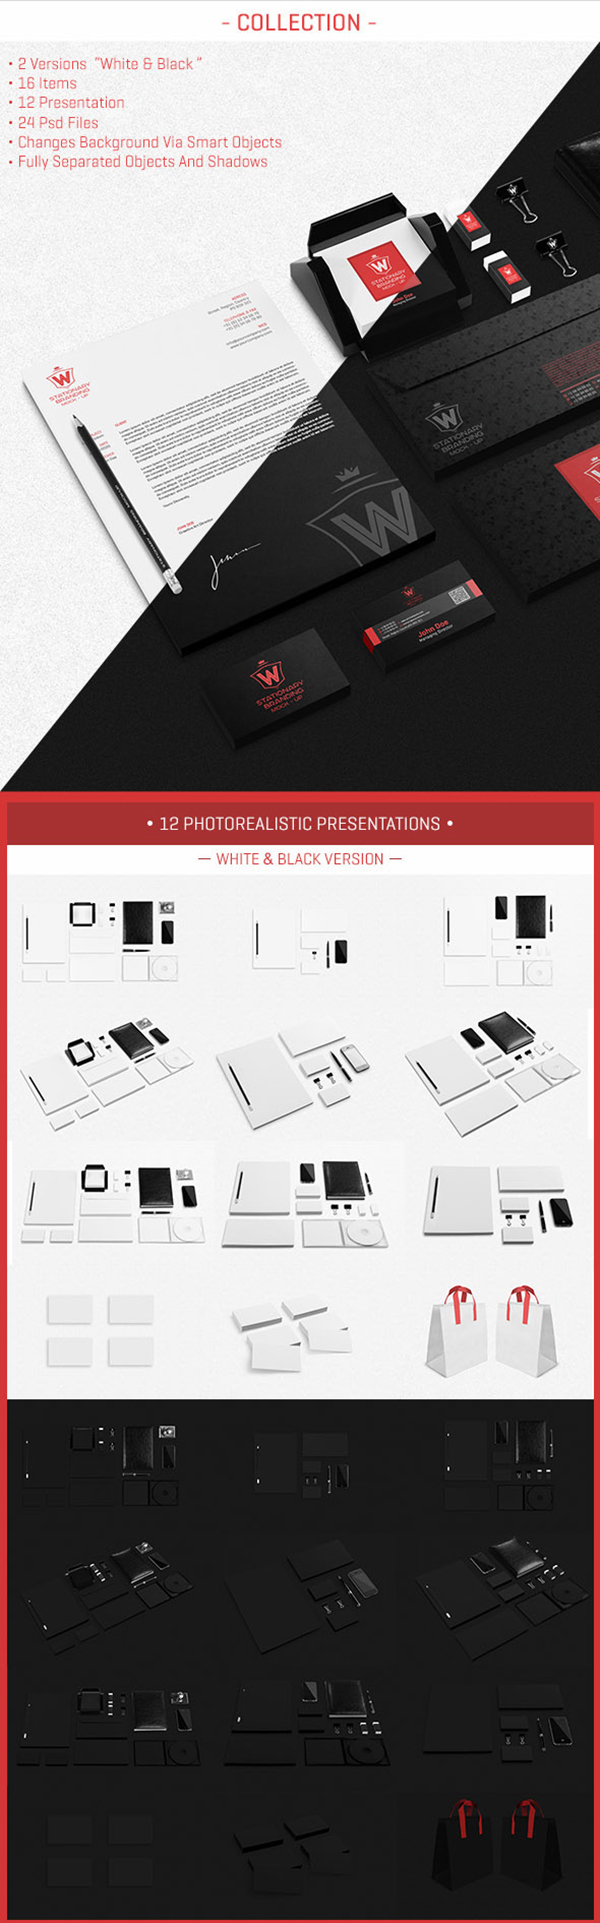 07 Stationery Branding Mock-Up Black